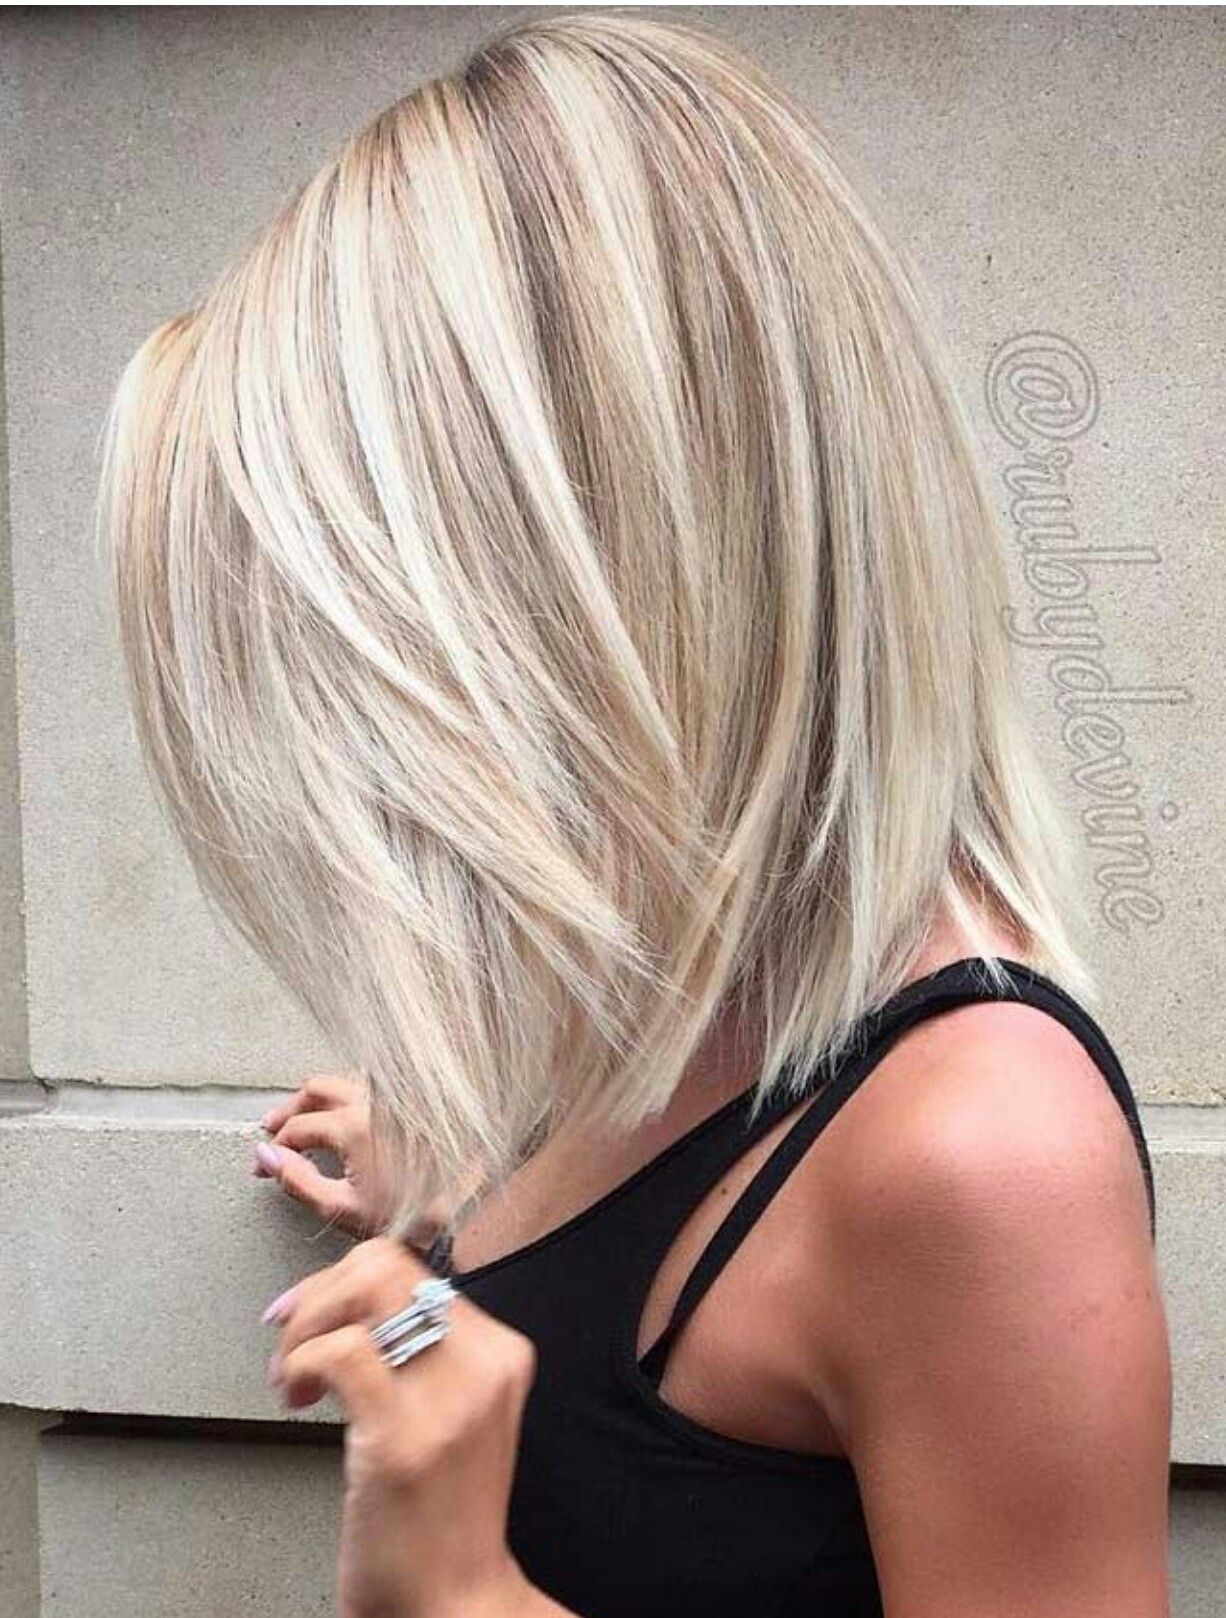 Pin by maria luz daly on hairstyle pinterest short hair shorts